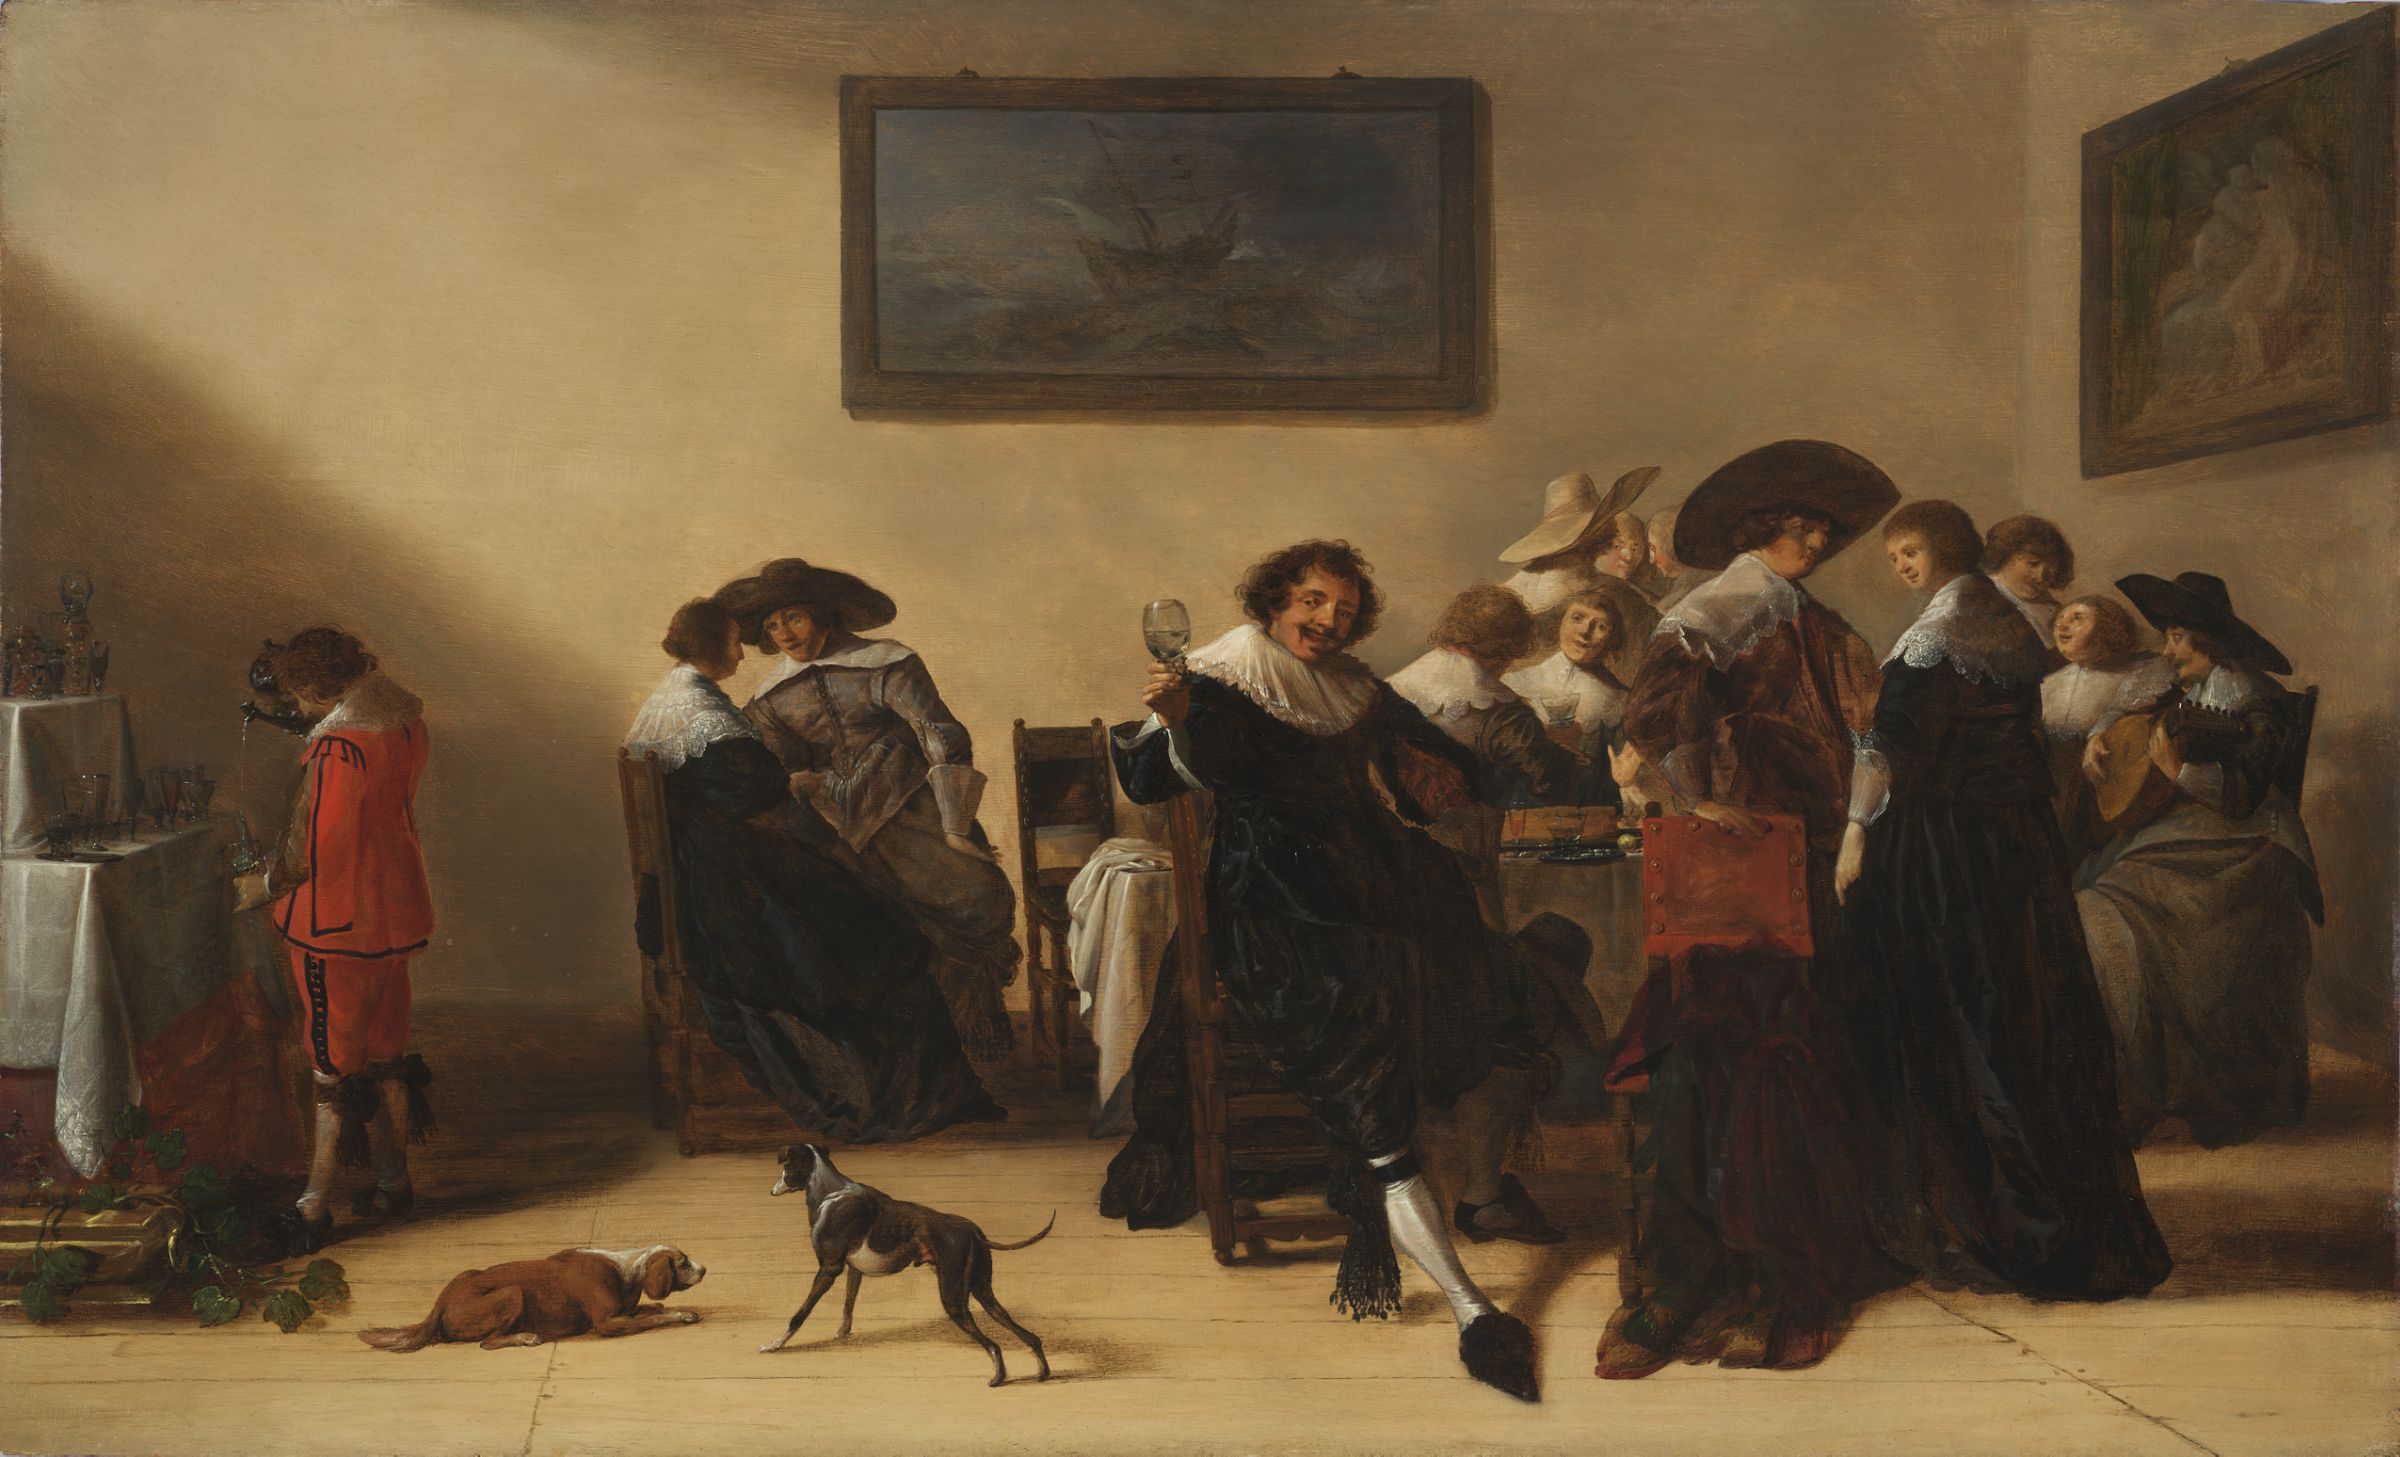 Anthonie Palamedesz., Merry Company in an Interior, 1633. Oil on panel. Harvard Art Museums/Fogg Museum, Gift of Peter and Anne Brooke, 2016.244.